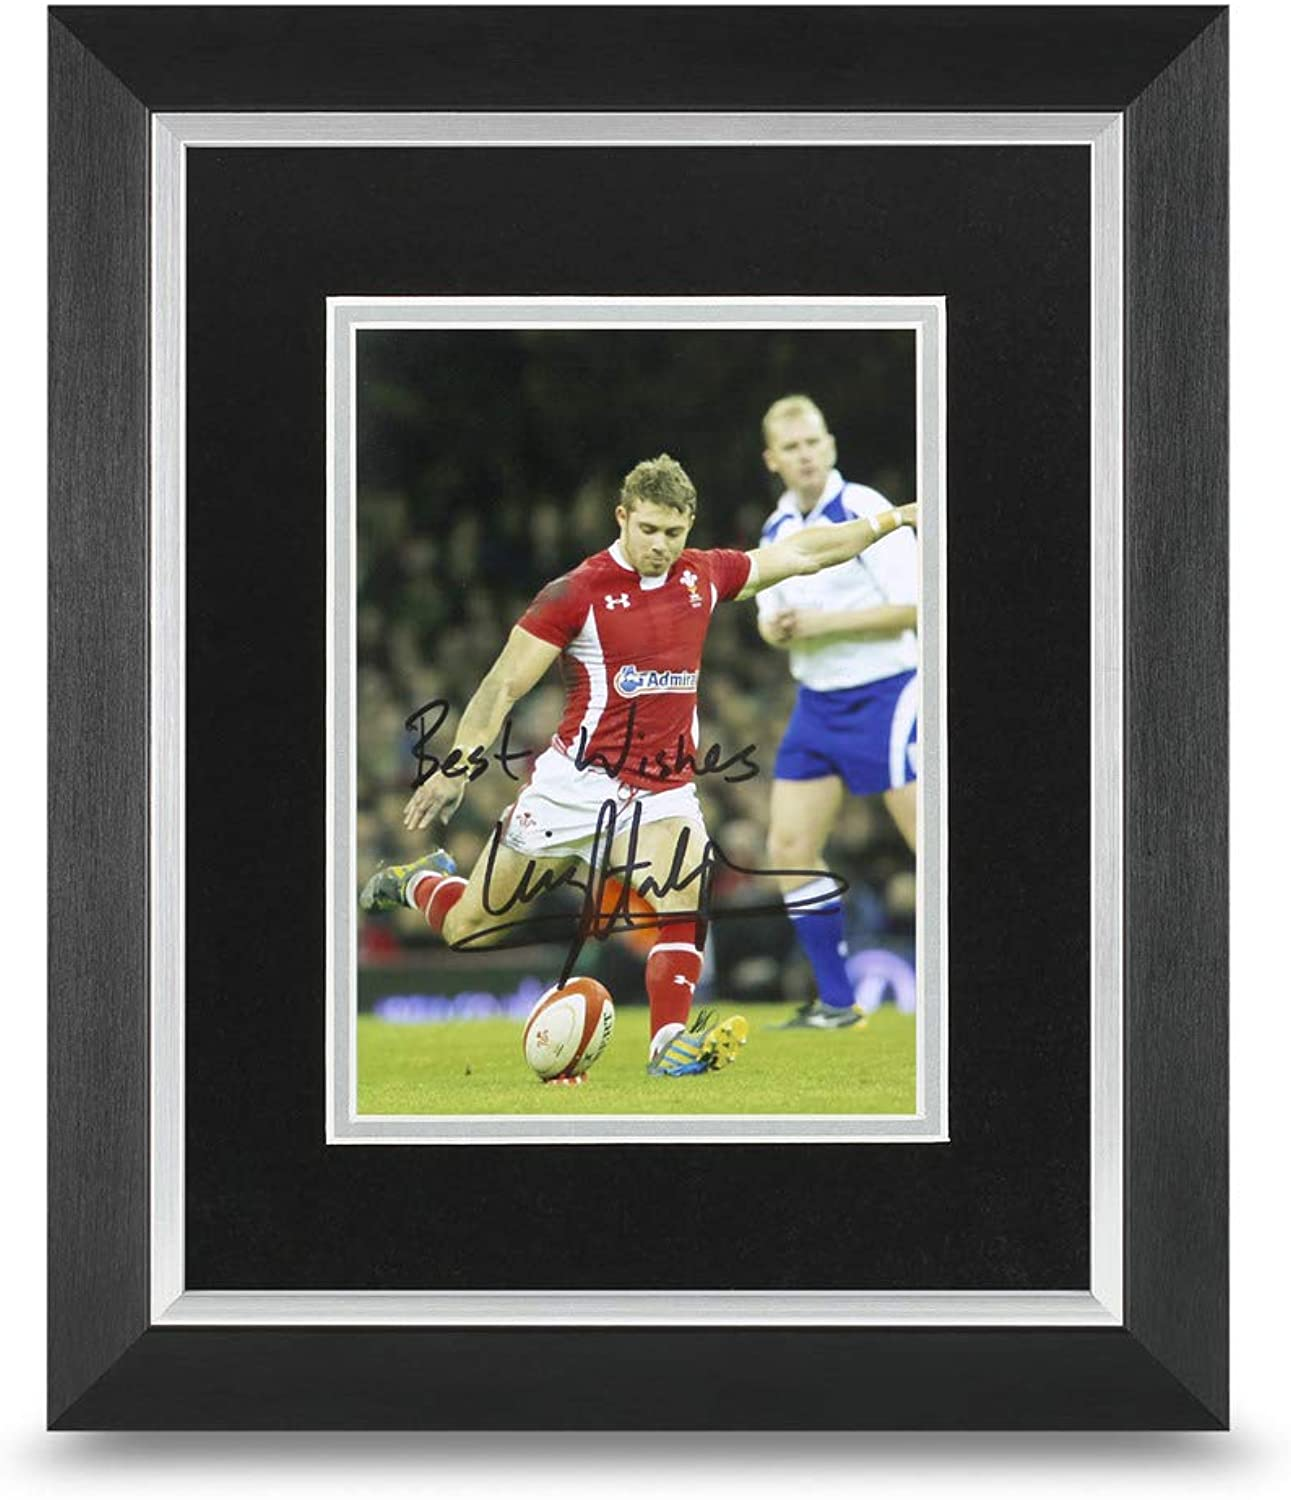 Leigh Halfpenny Signed 10x8 Framed Photo Display Rugby Autograph Memorabilia